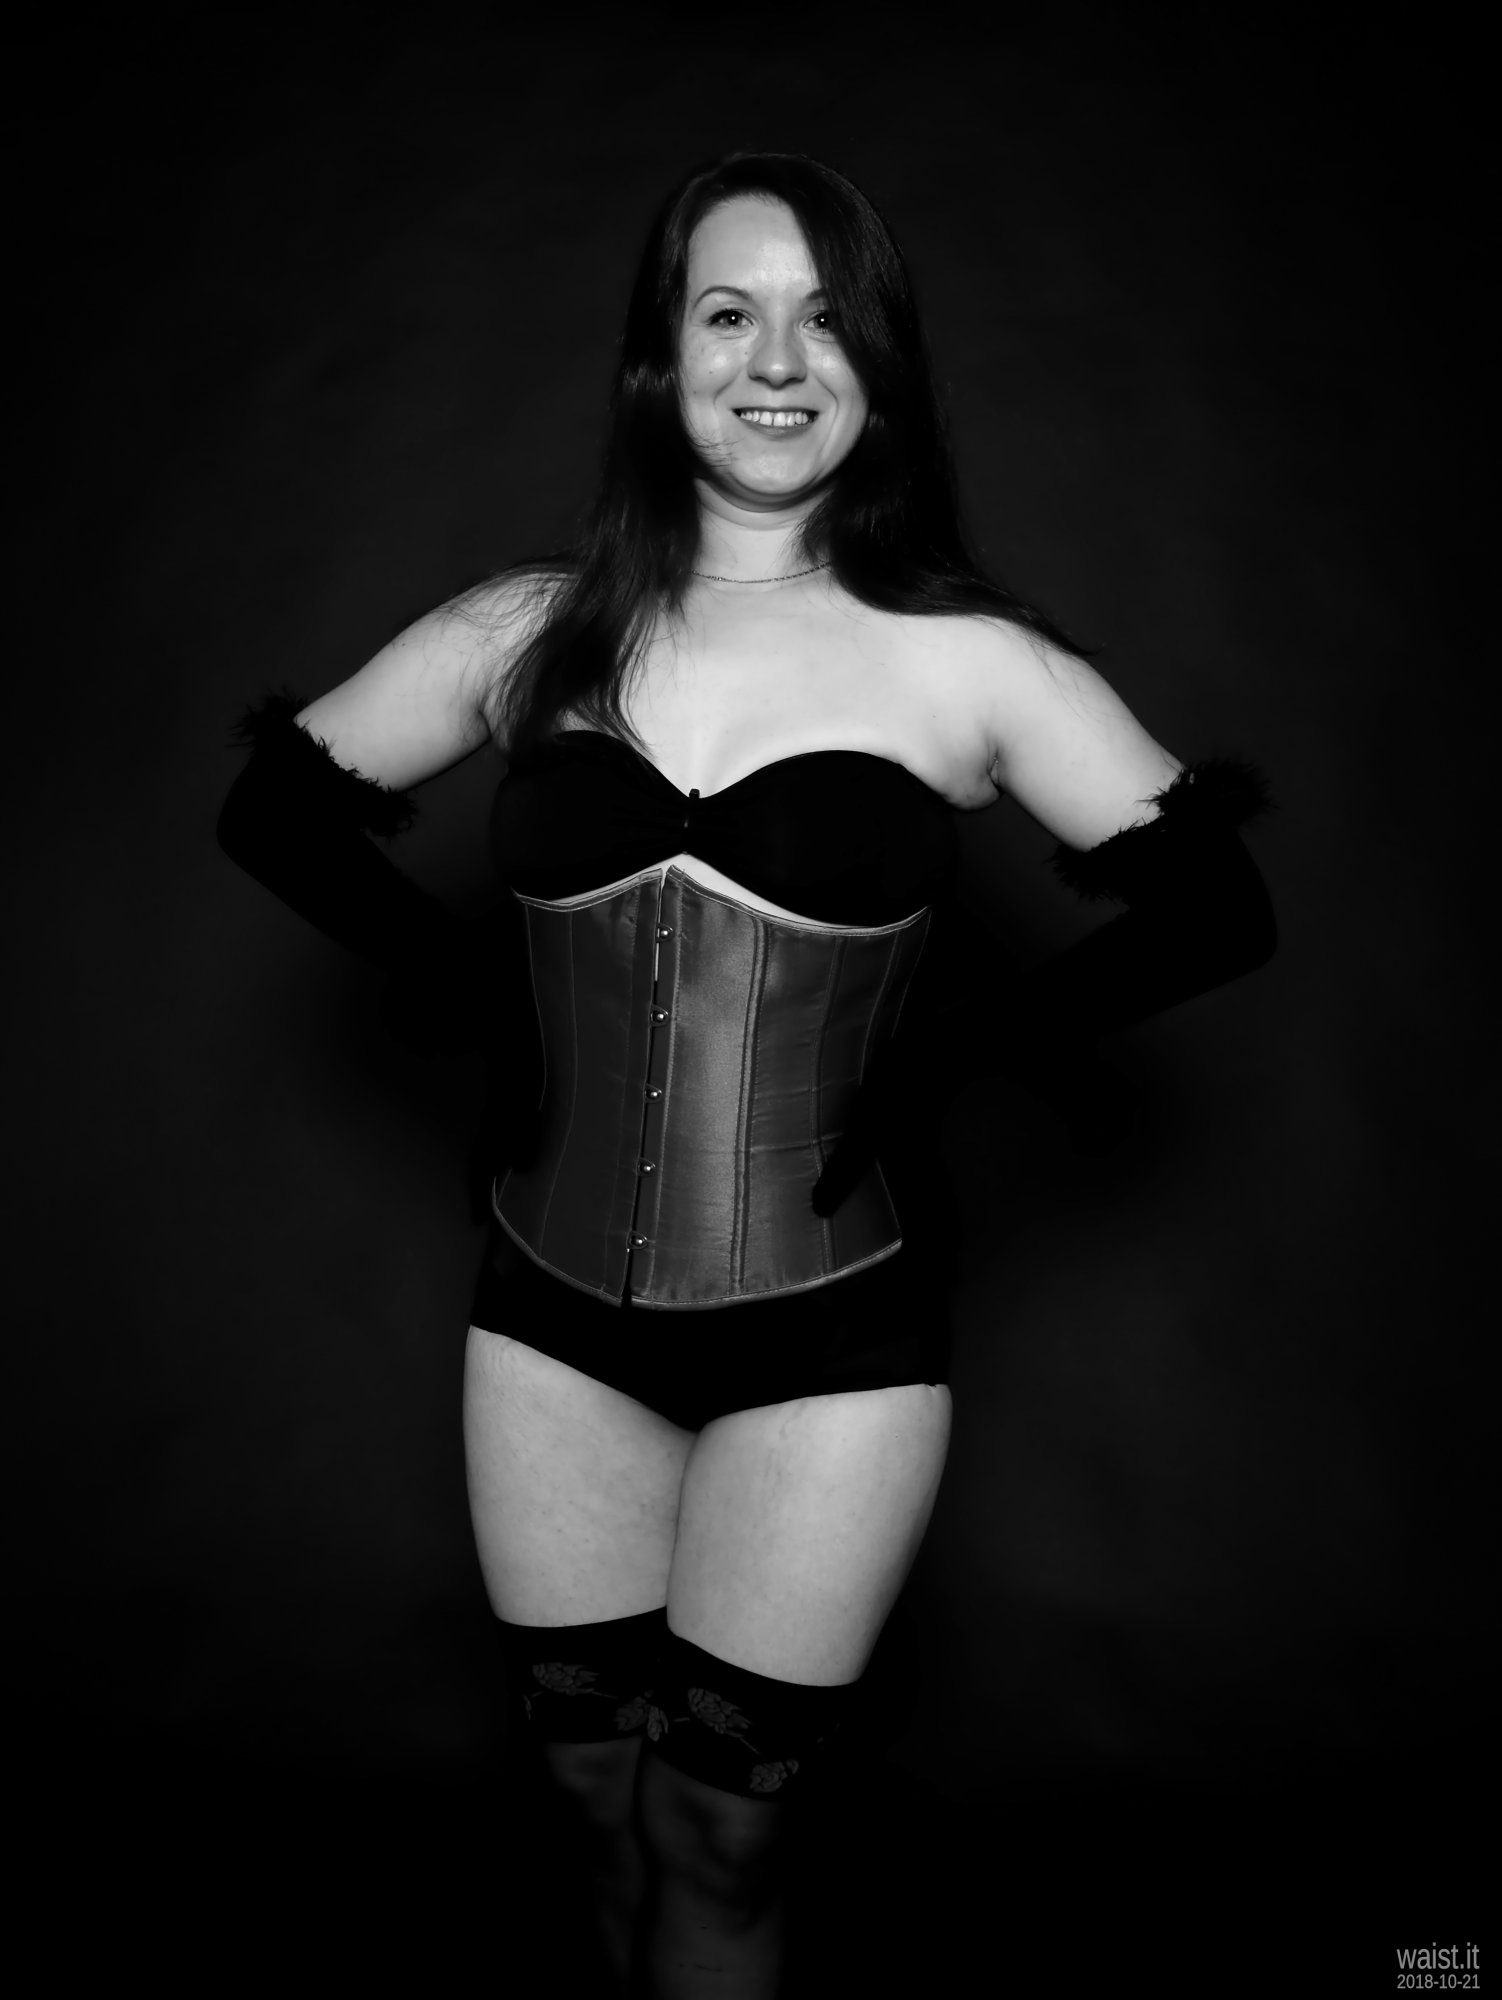 2018-10-21 Darya (DaryaM) in purple underbust corset worn over black boob-tube and high-waisted, black, Chinese control briefs worn as hotpants